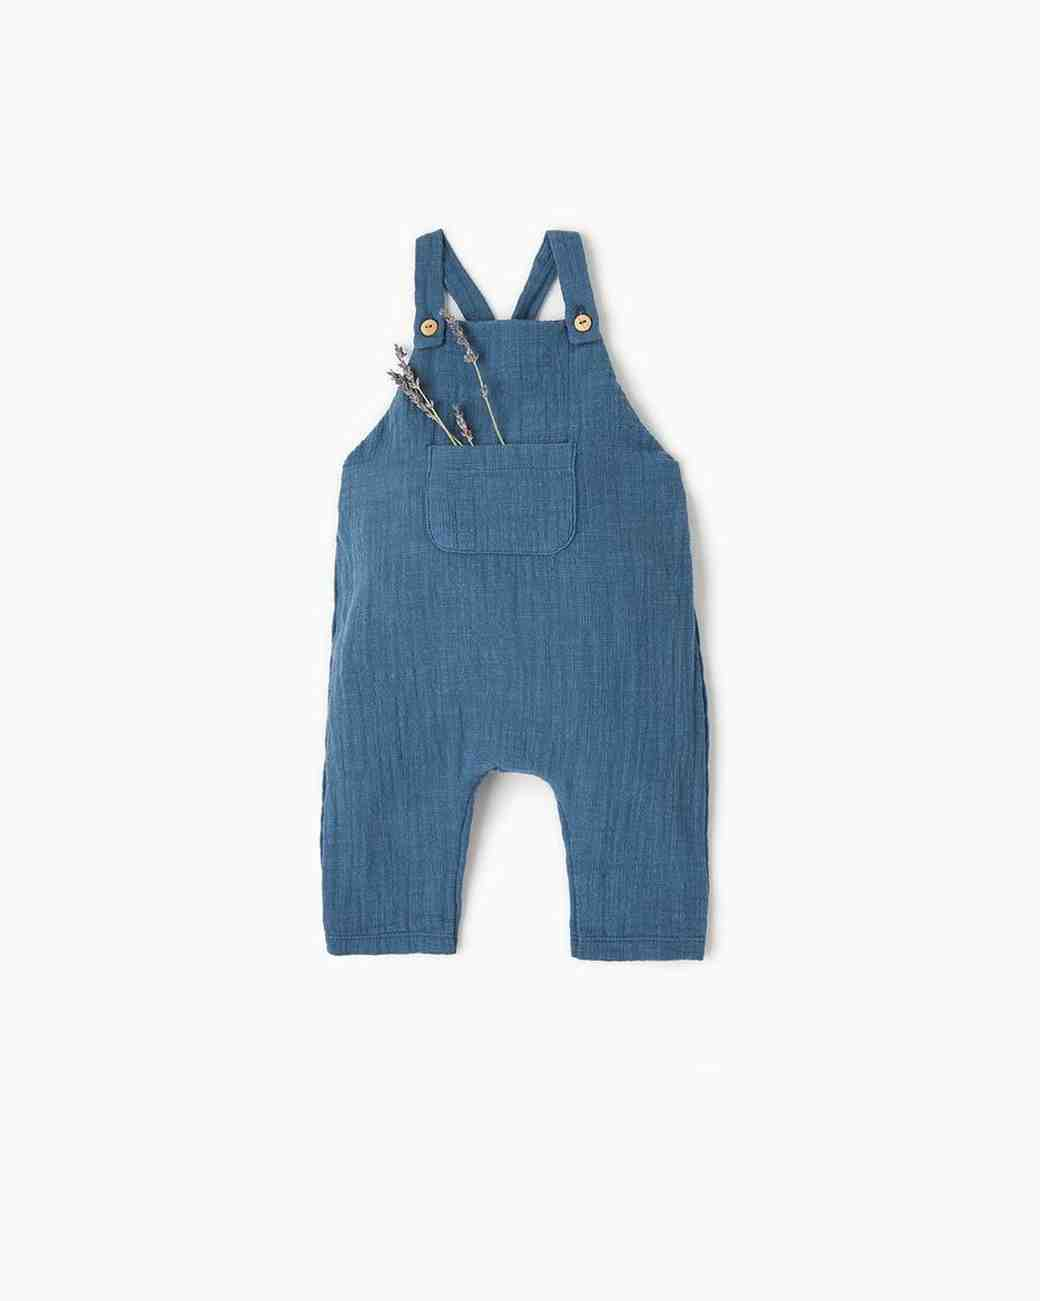 Zara Denim Overalls, Spring Ring Bearer Attire